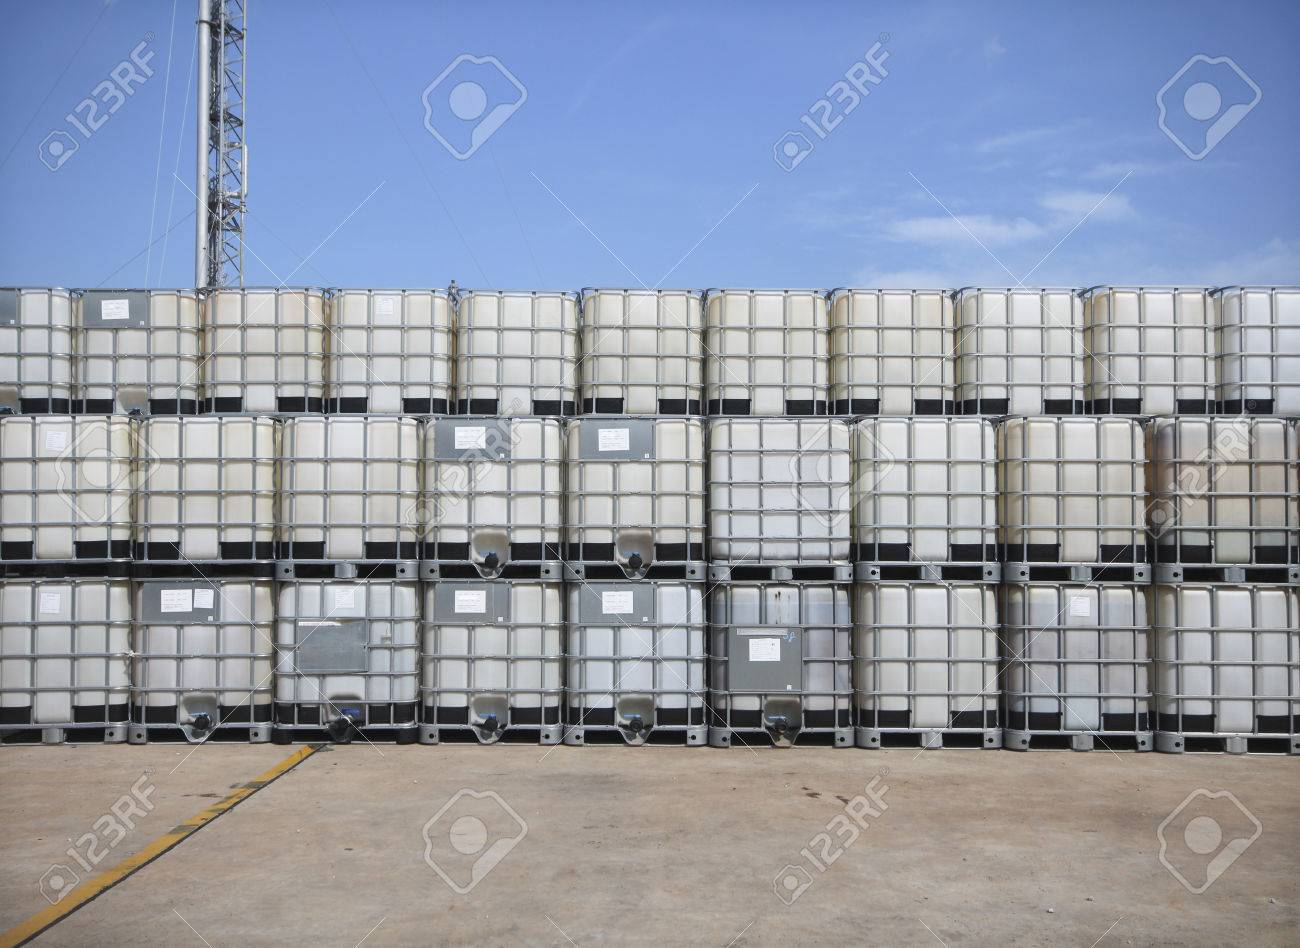 Plastic tank container for keep liquid chemical - 23676307